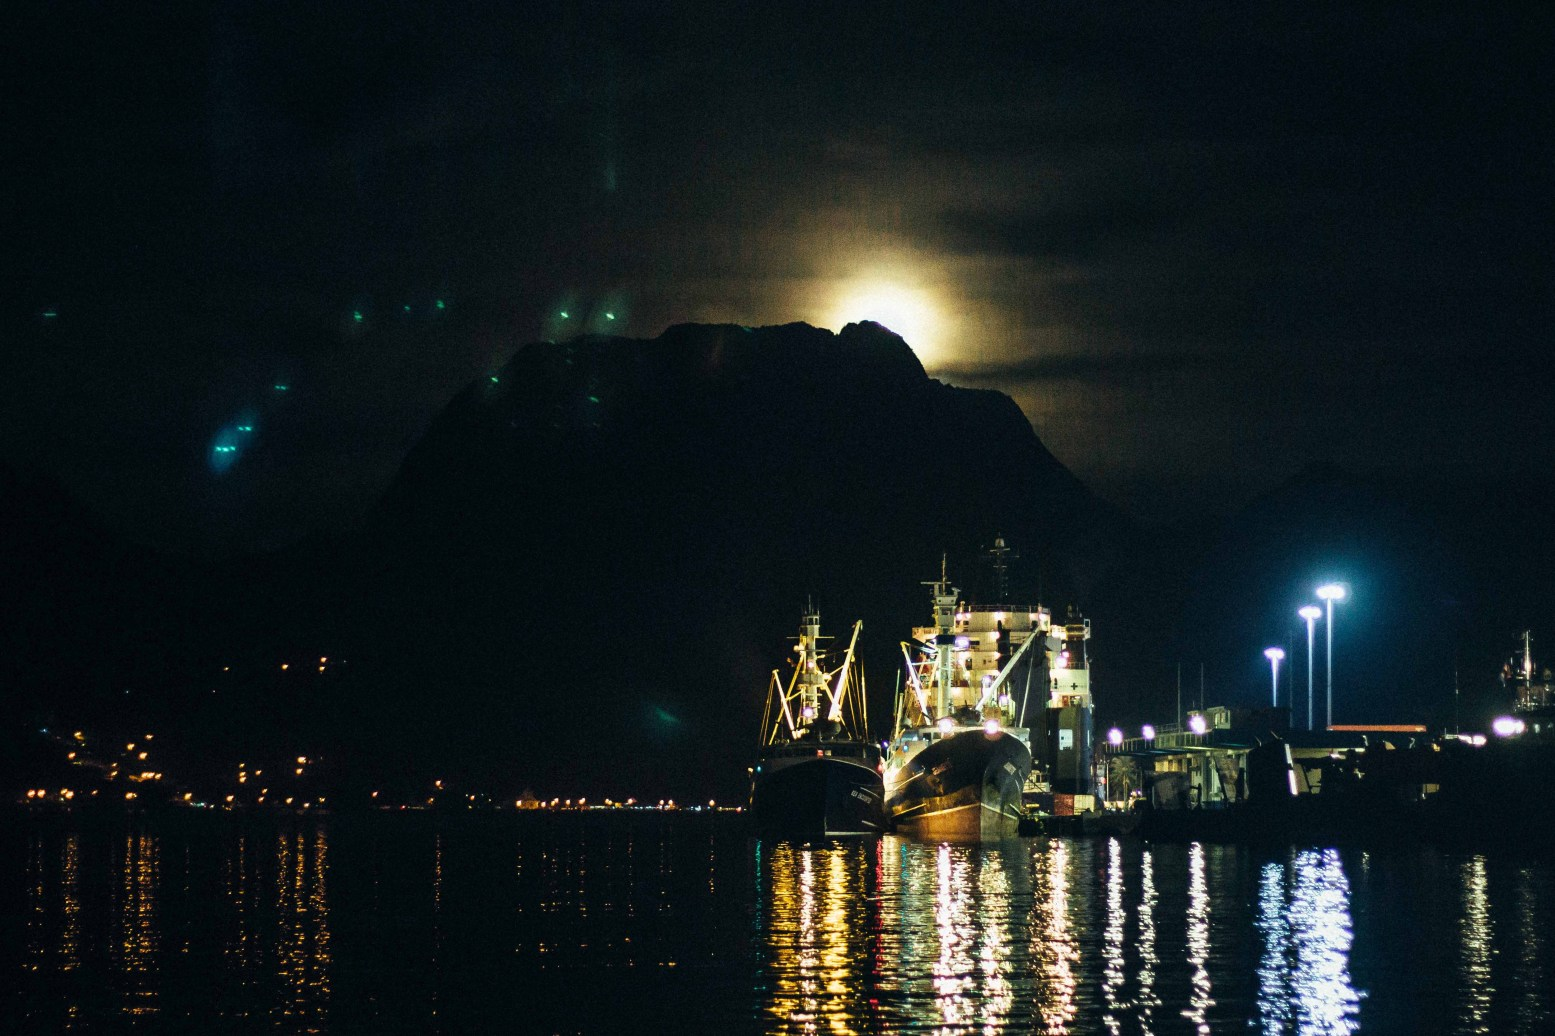 Beautiful Pago Pago Harbor Lights from First Friday @ the Marketplace! PC: Nerelle Que